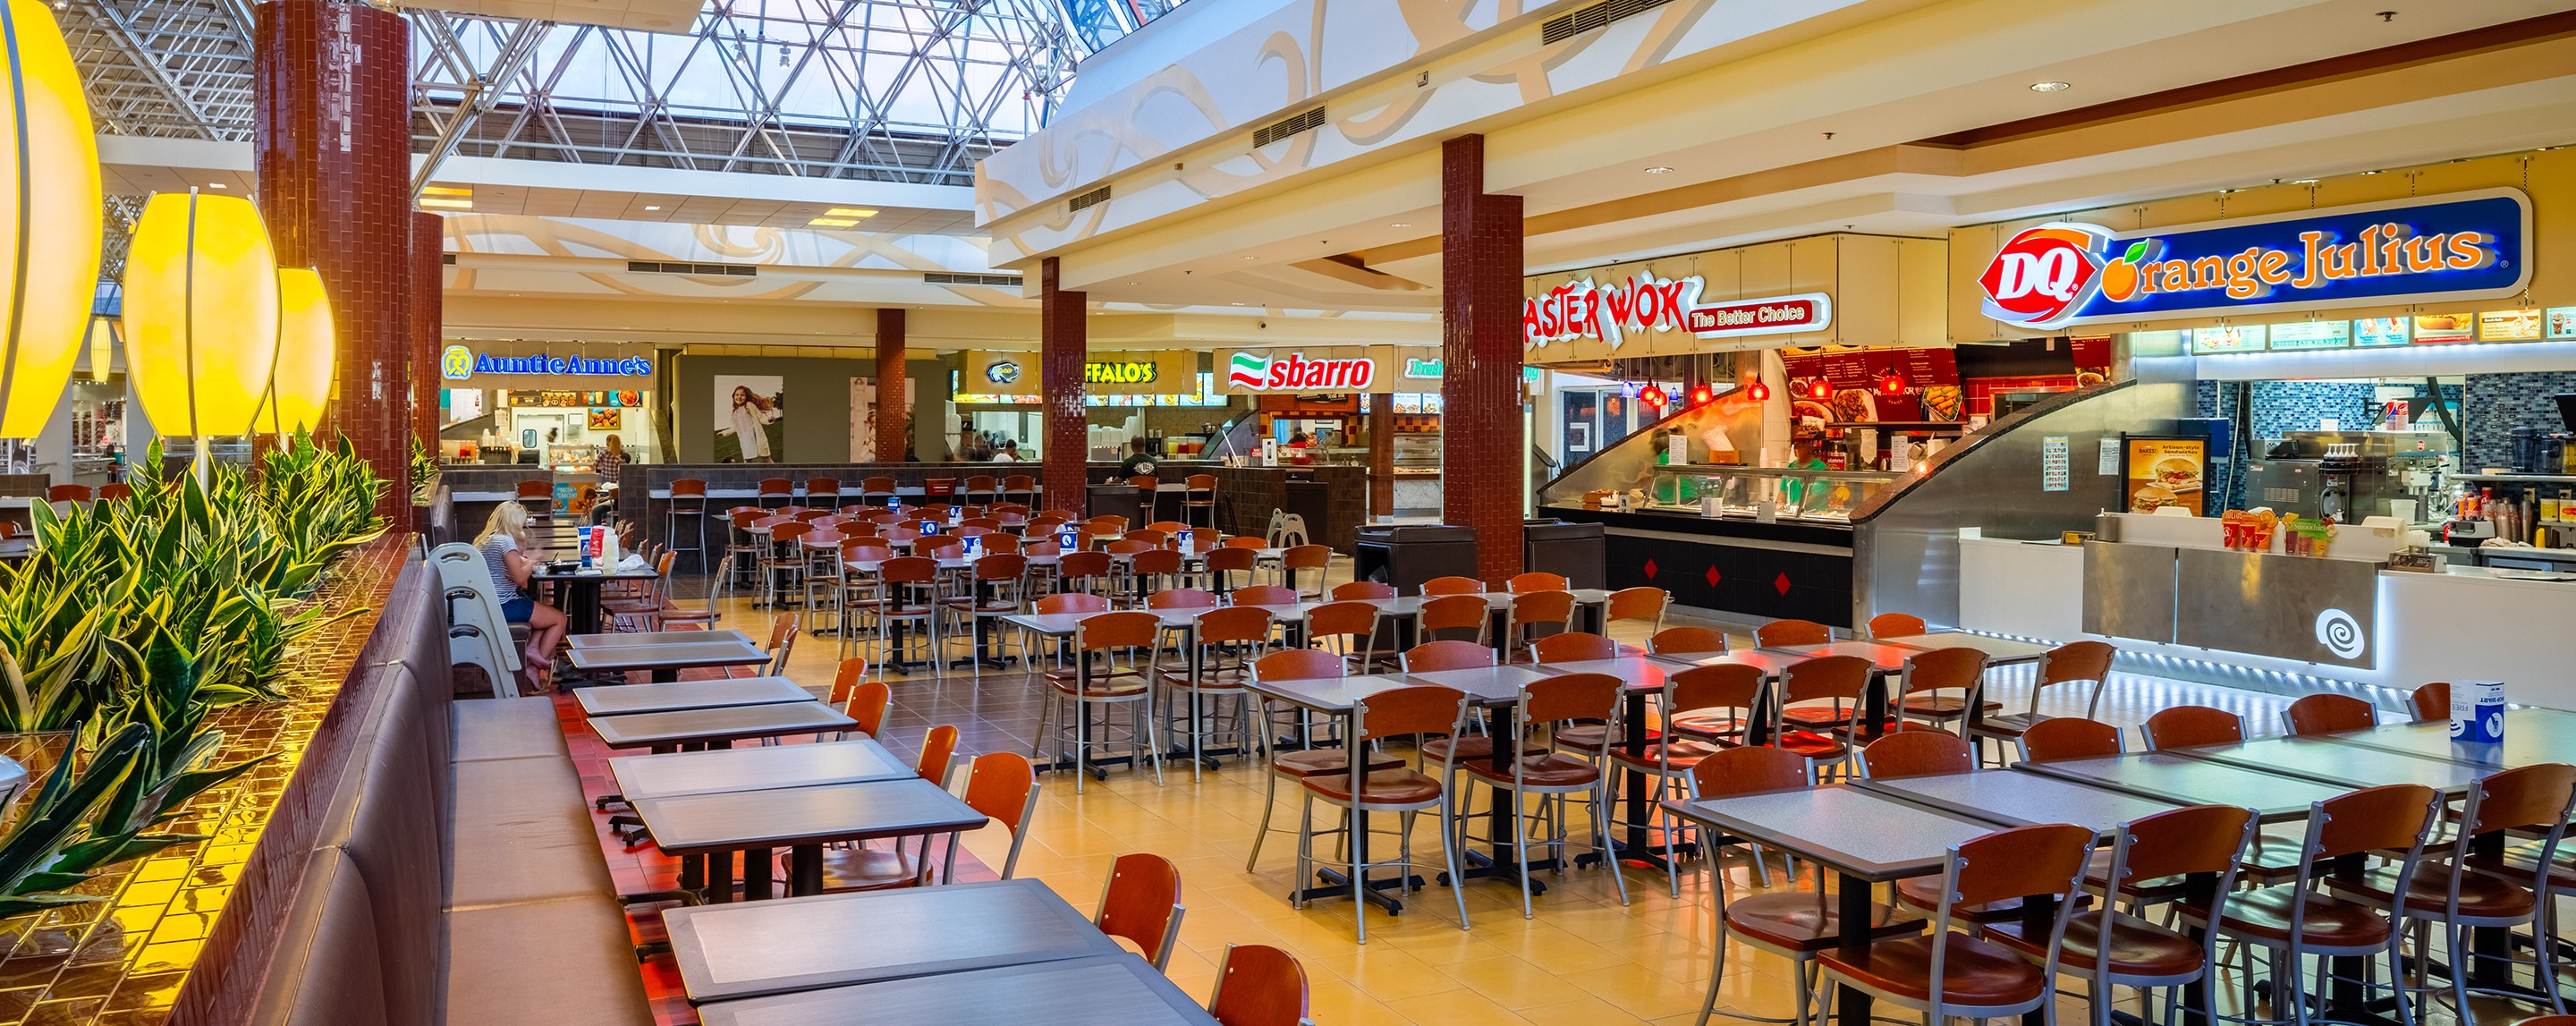 The Augusta Mall's food court offers tables, booths, and chairs for shoppers and visitors to relax and eat.